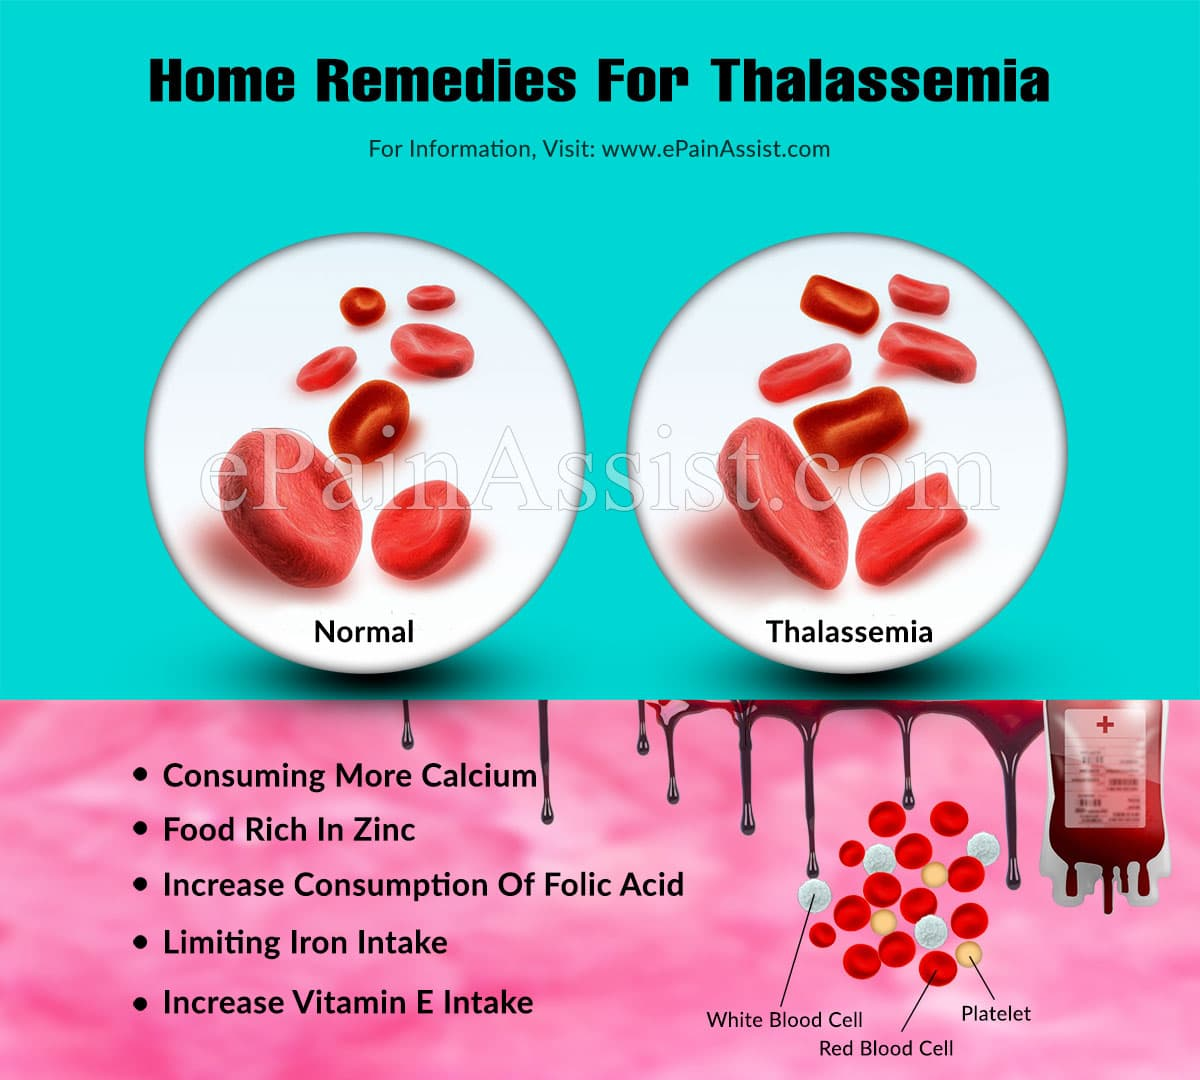 Home Remedies For Thalassemia